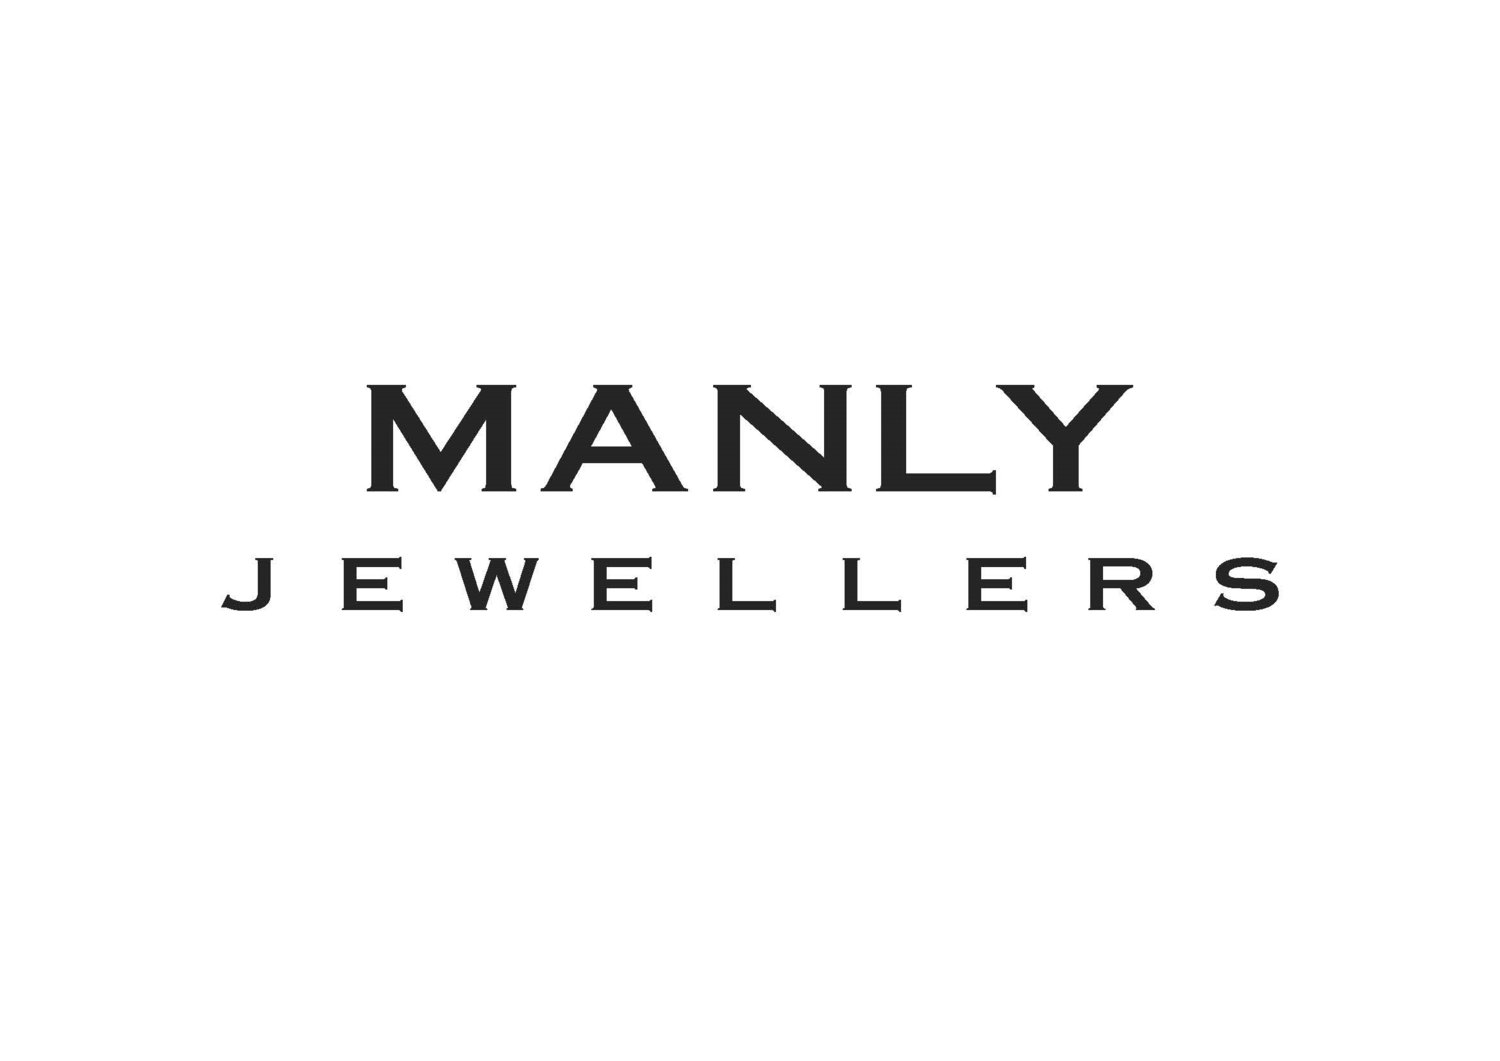 Manly Jewellers